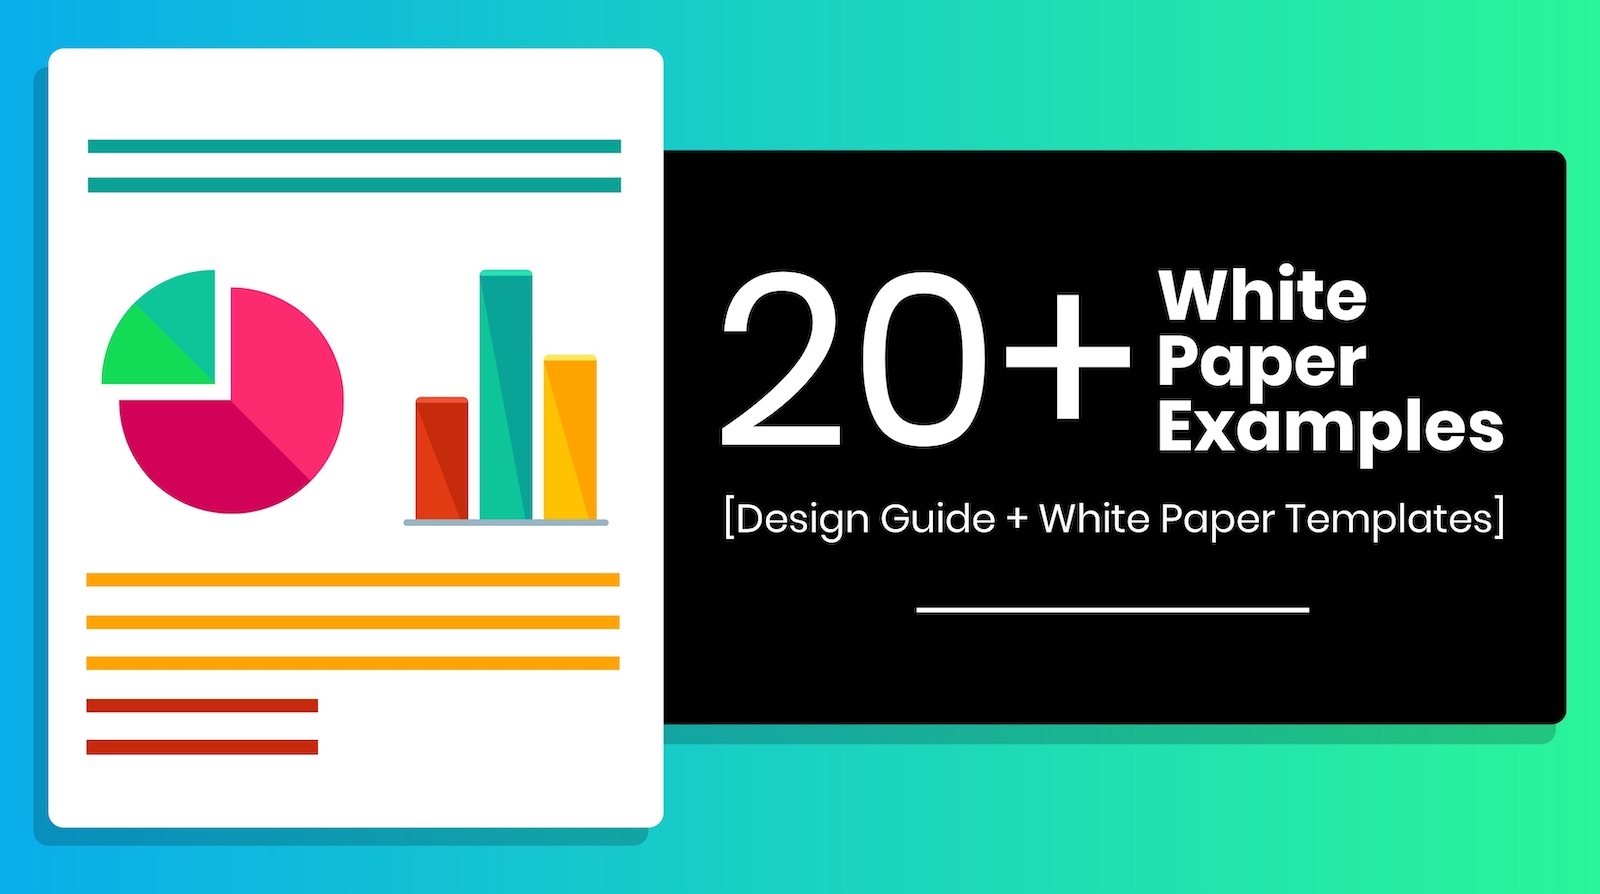 20 Page Turning White Paper Examples Design Guide White